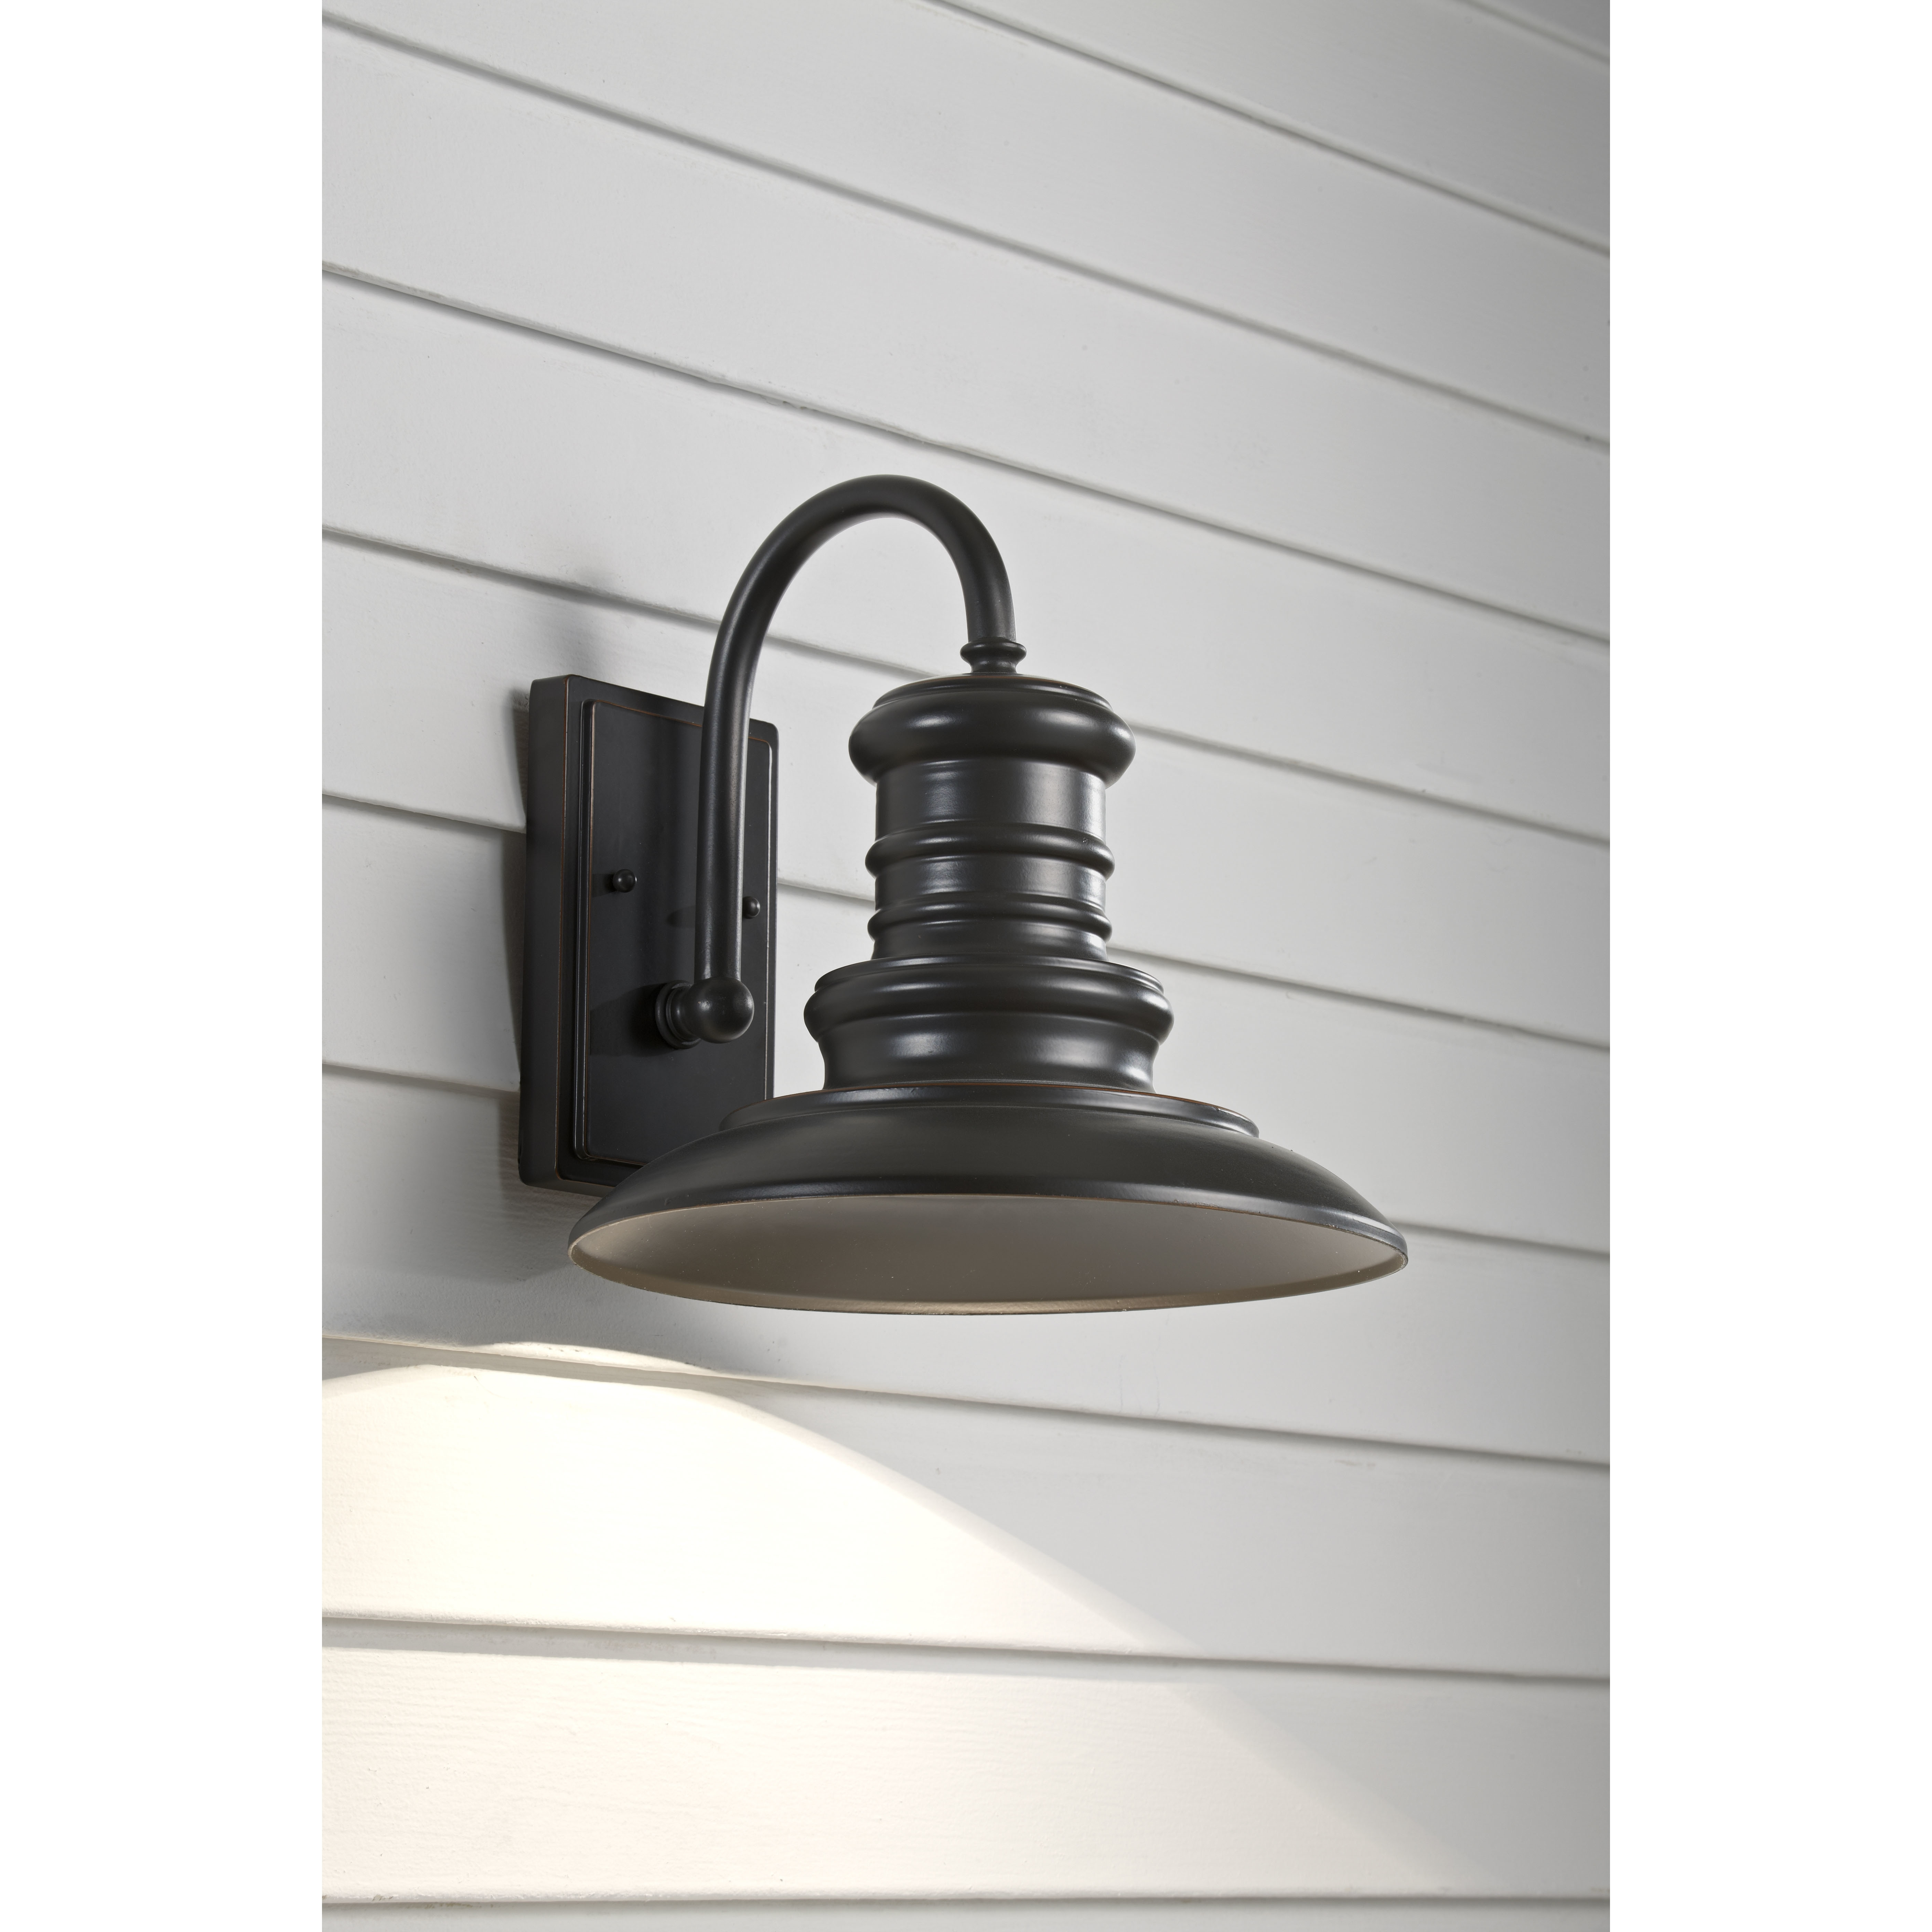 Contemporary Rustic Outdoor Lighting At Wayfair Within Popular Modern Outdoor Wall Lighting Allmodern Redding Station 1 Light (View 6 of 20)